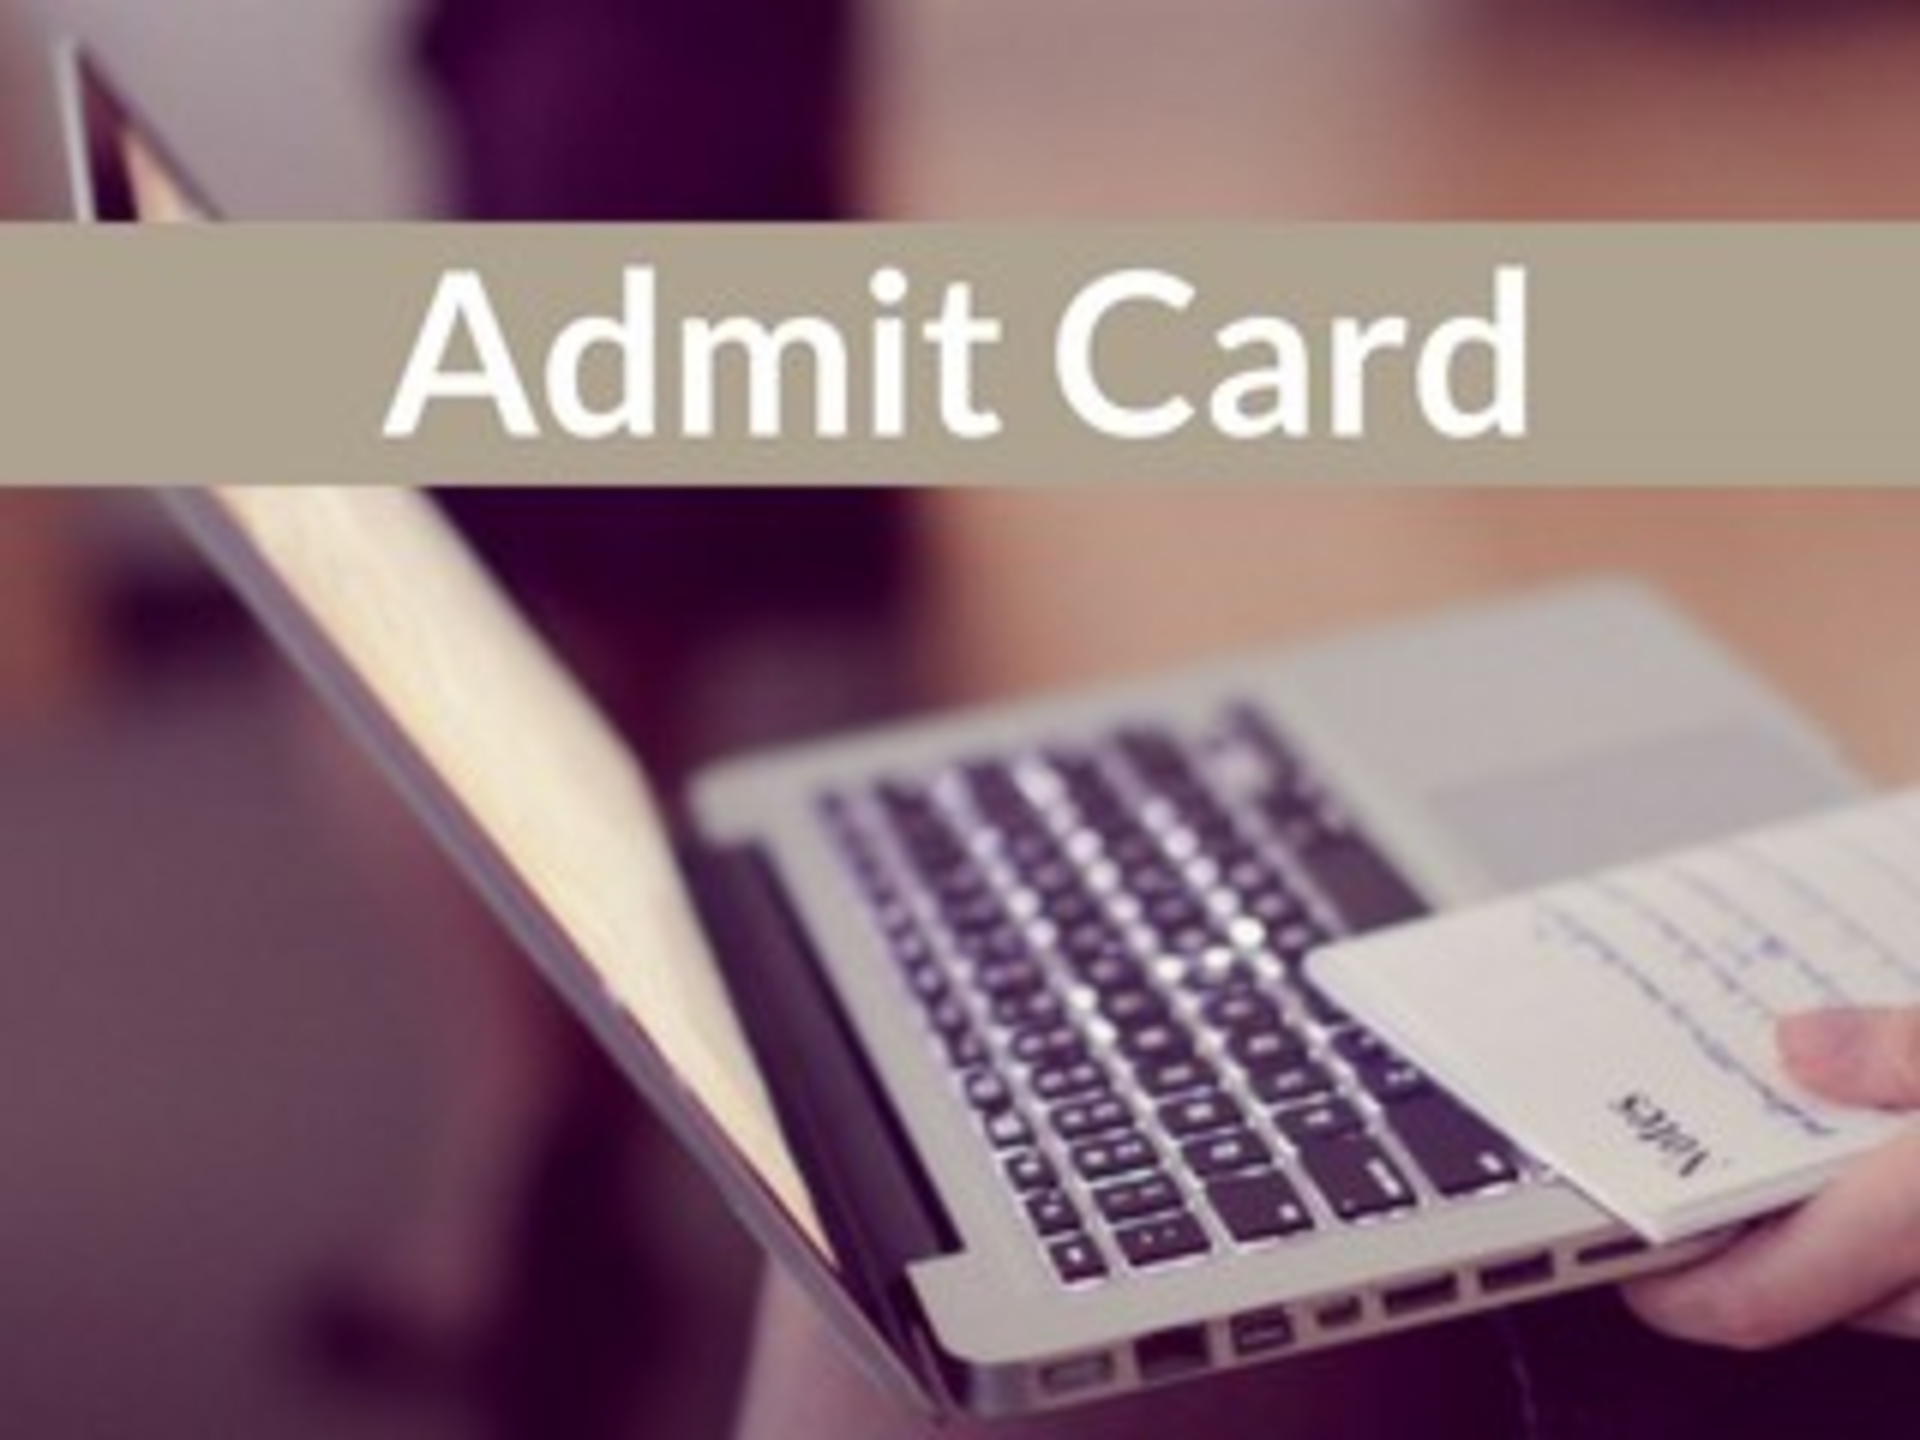 How to Download AMUEEE Admit Card 2019 image